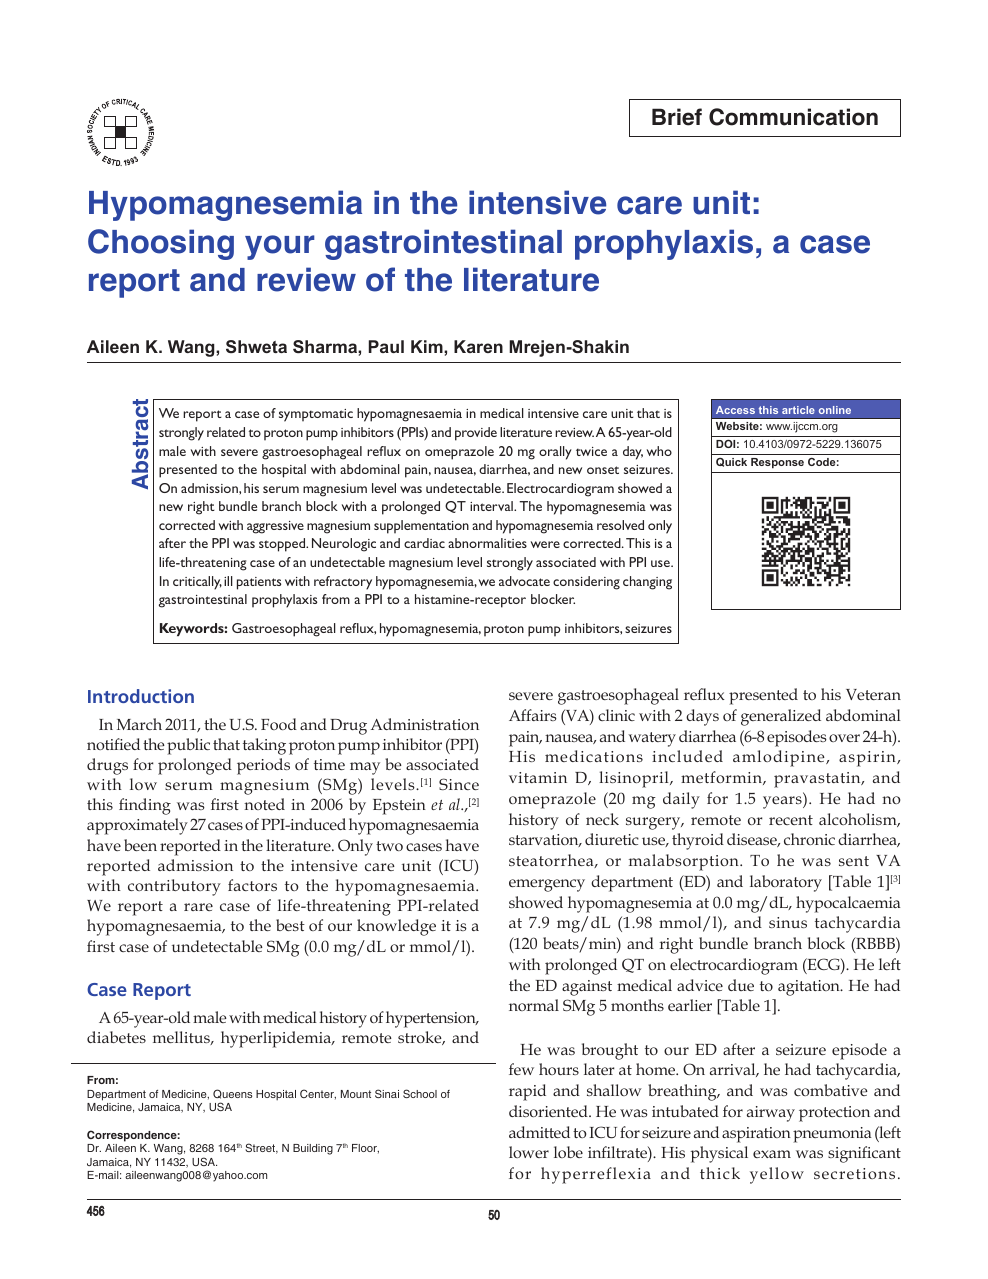 Hypomagnesemia in the intensive care unit: Choosing your